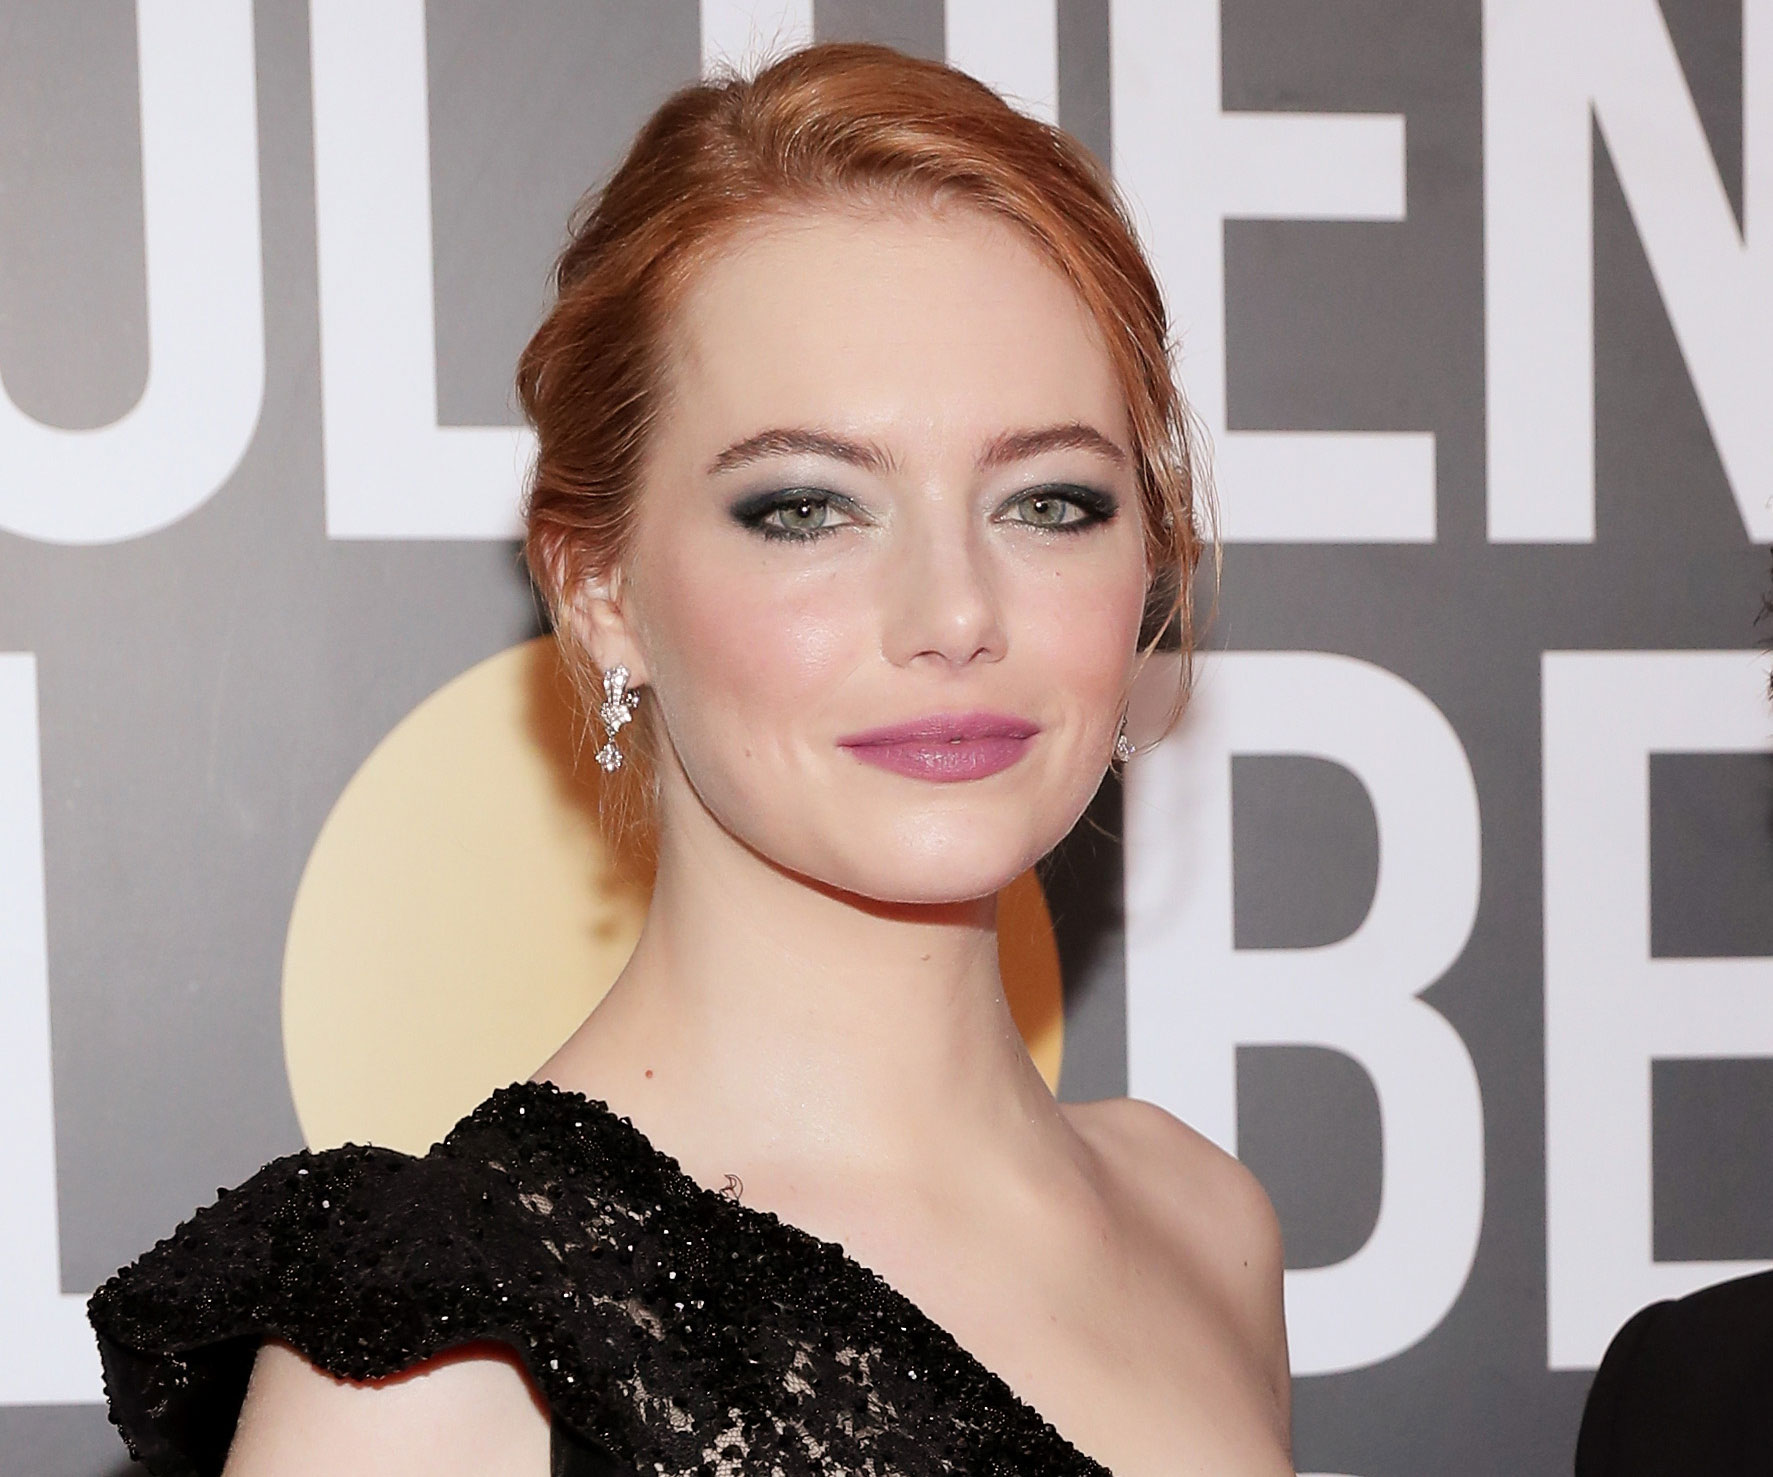 You Might've Missed The Feminist Message Behind Emma Stone's Golden Globes Makeup